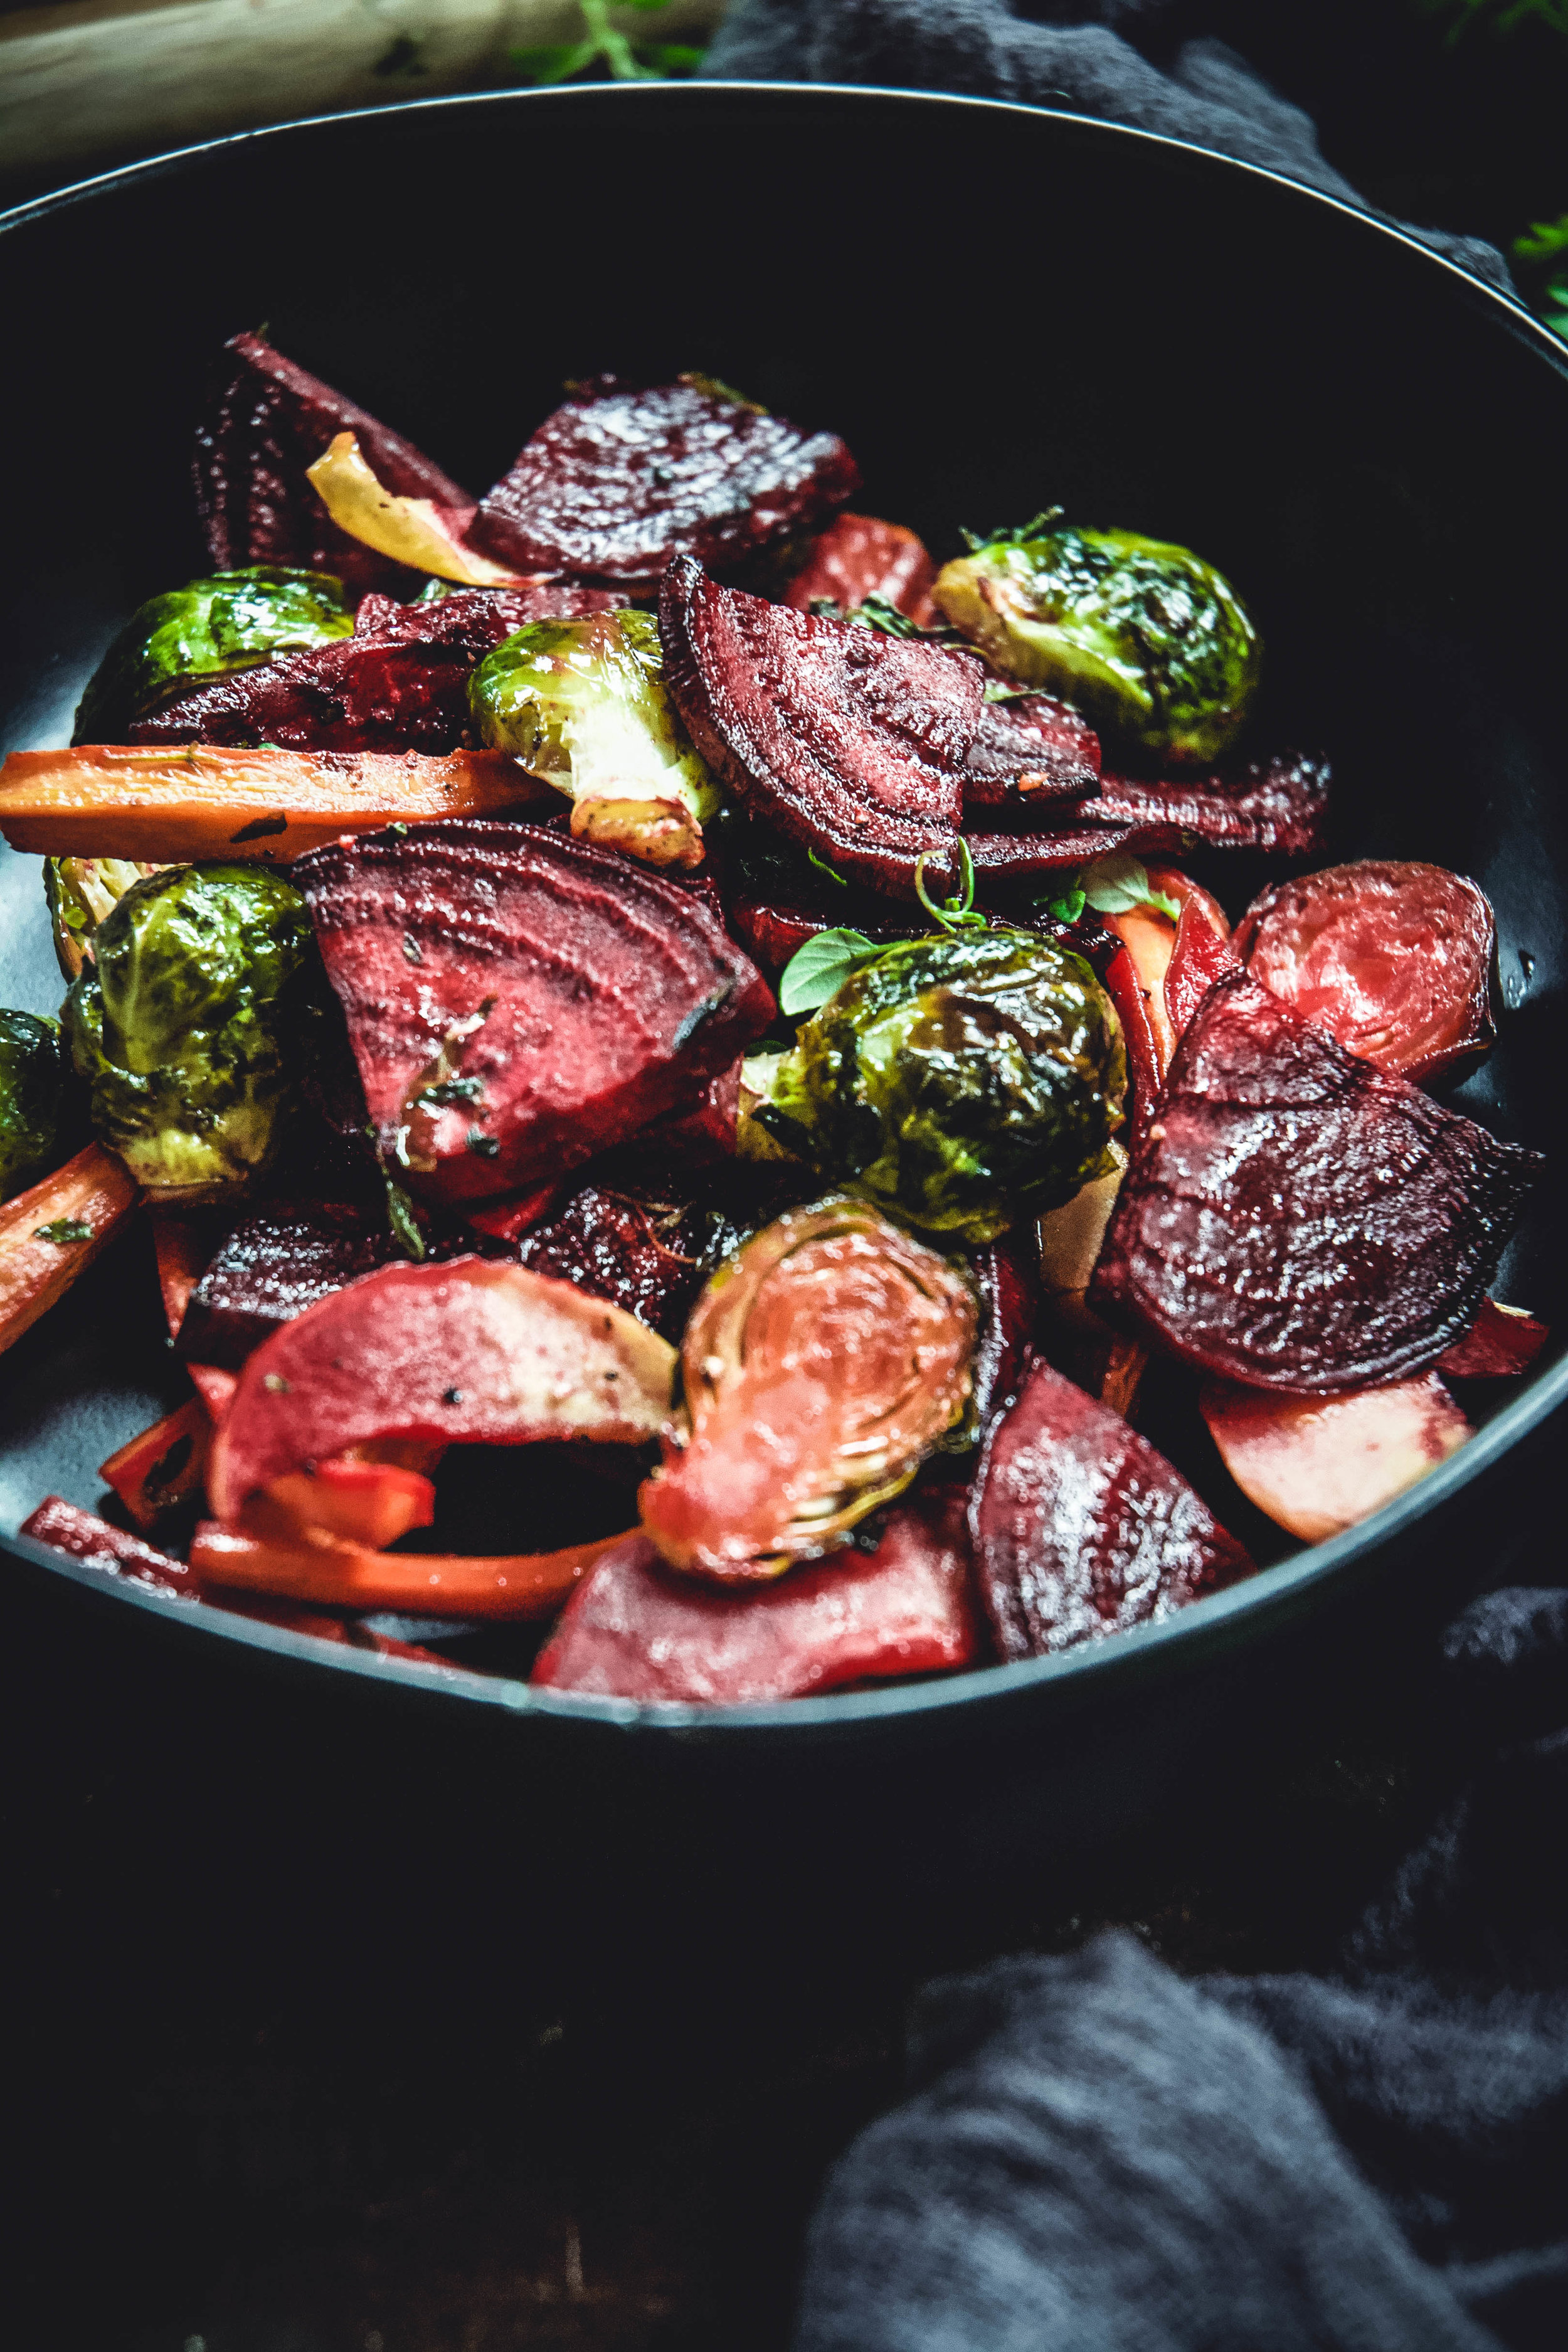 Experience all of fall's produce in one delicious side dish. Roasted beets, apple, carrots and Brussels sprouts work perfectly with maple syrup and dijon mustard to create a delicious, festive Thanksgiving, holiday or every day side dish. It's vegan, paleo with a whole 30 option as well. #vegan #calmeats #thanksgivingsides #fallsides #fallproduce #sidedishes #beets #carrots #brusselssprouts #paleosides #paleothanksgiving #whole30sides #whole30thankgiving